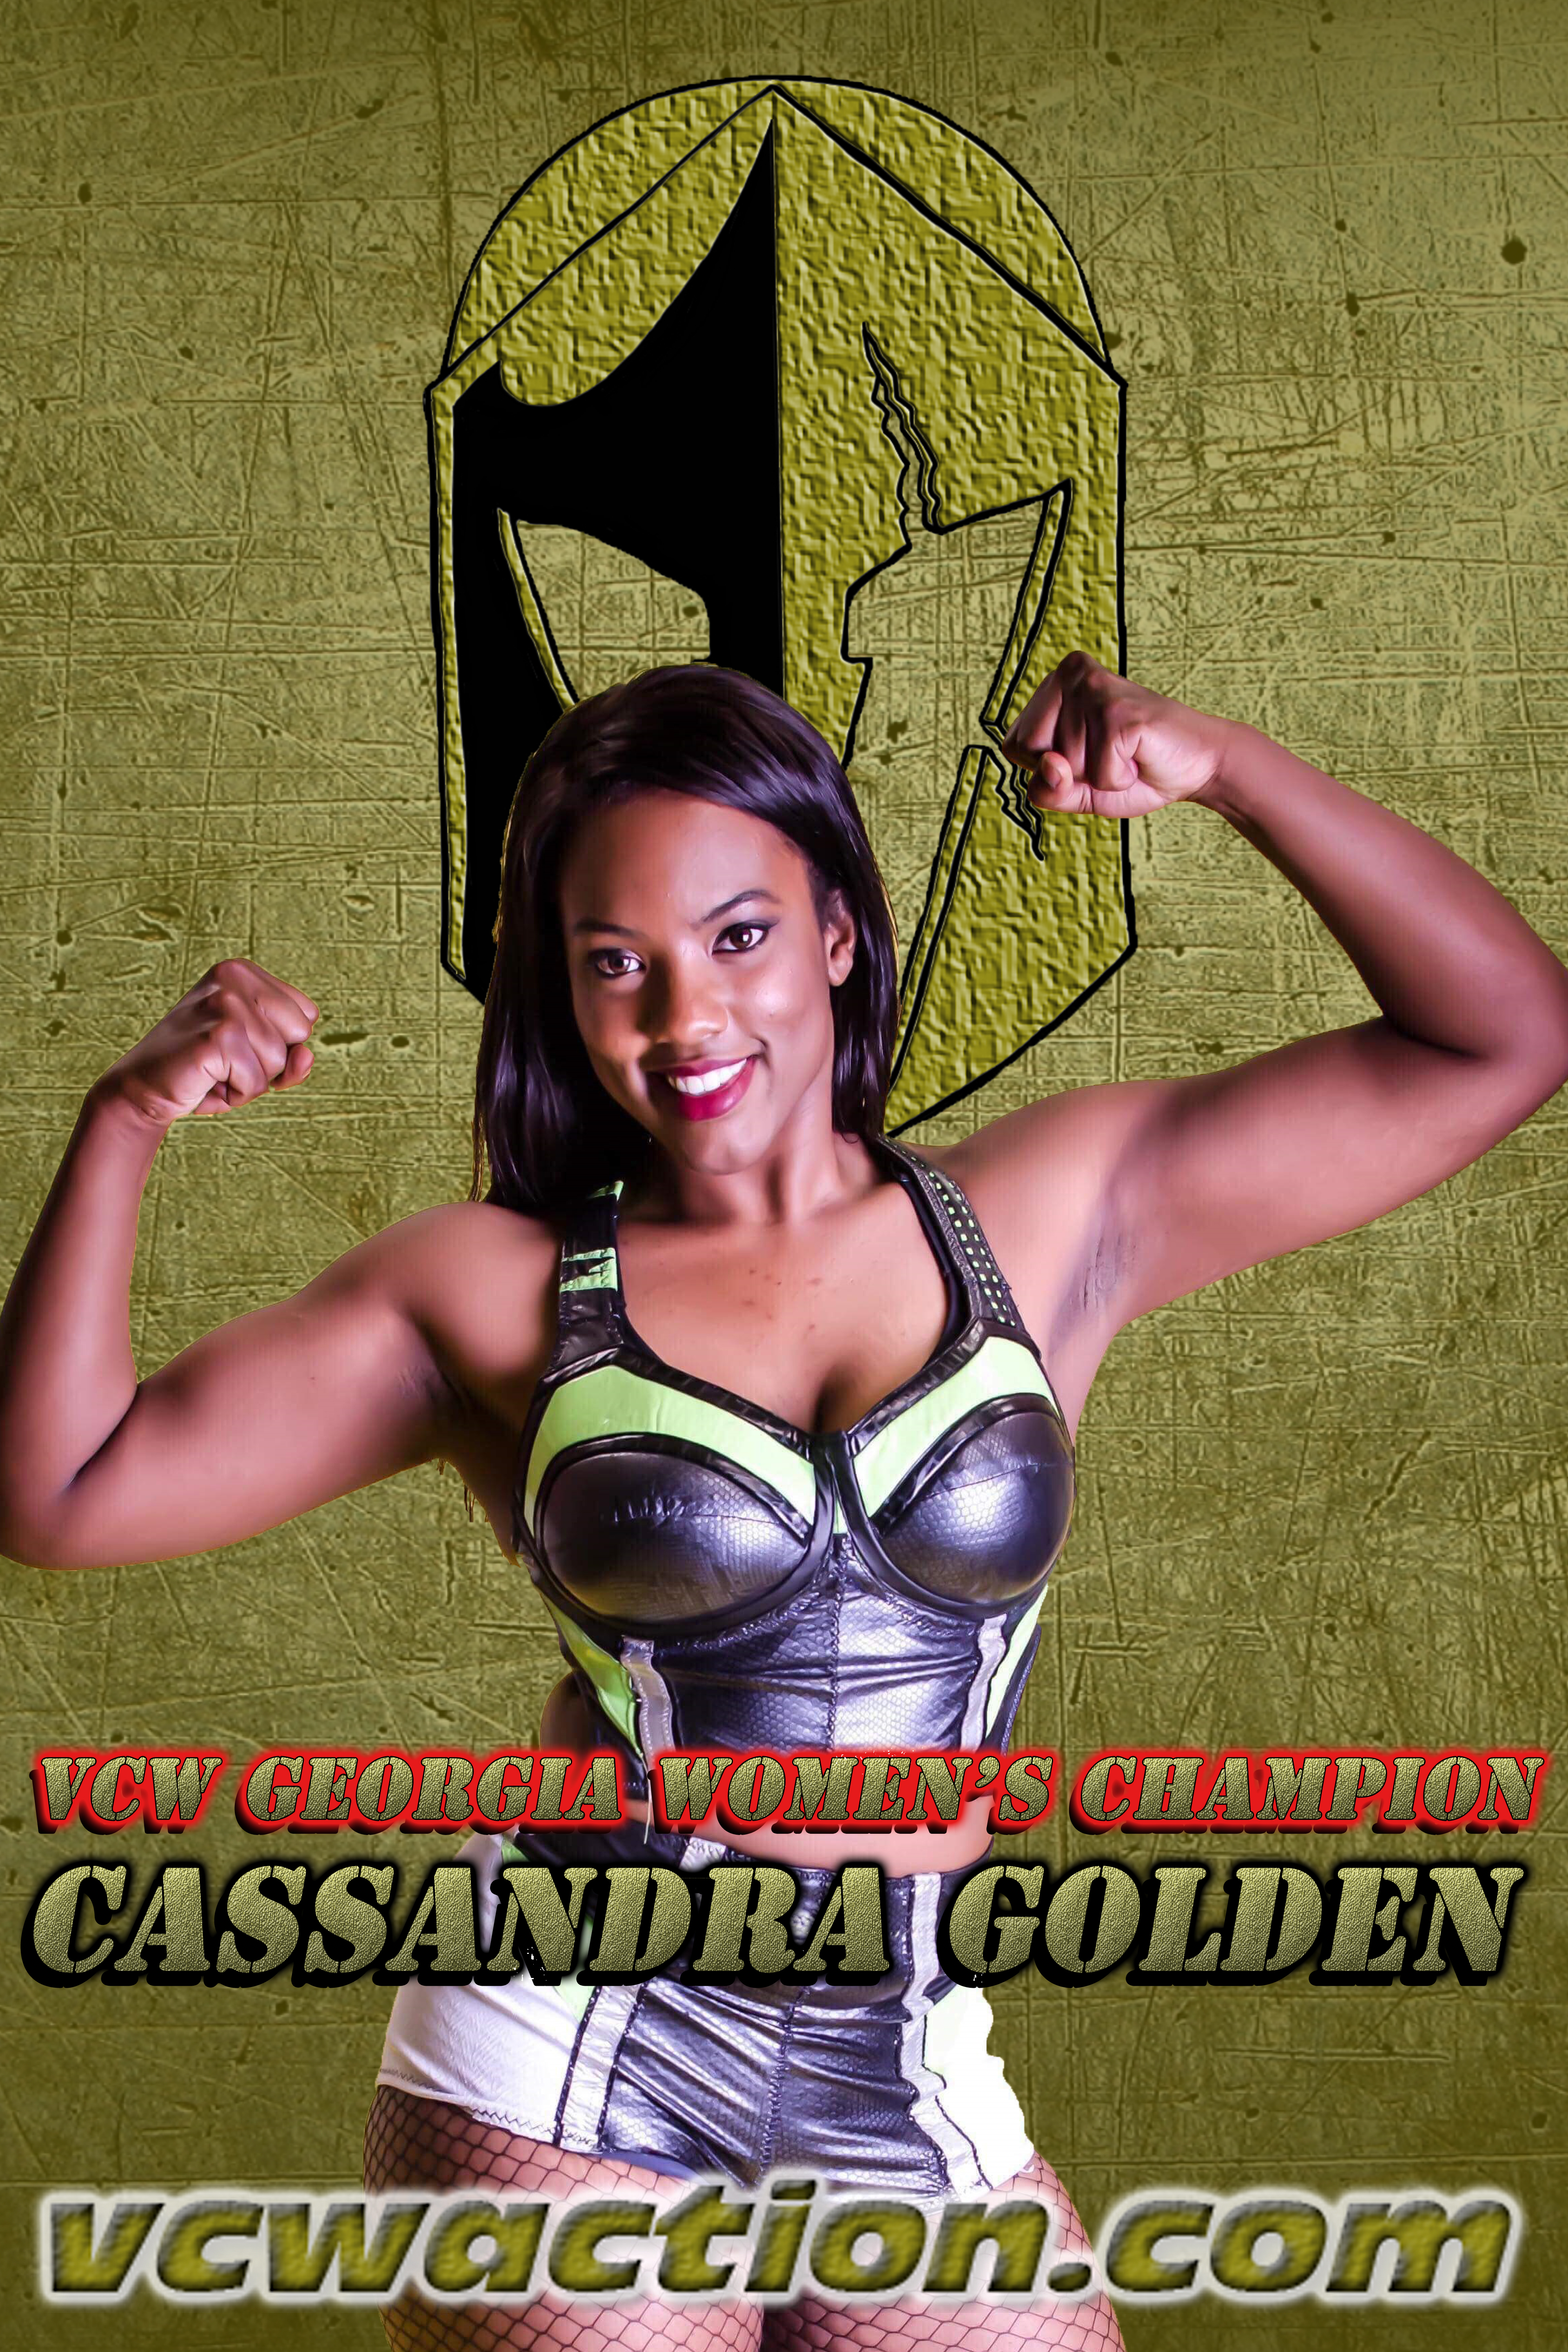 VCW Profile Page Cassandra Golden 02